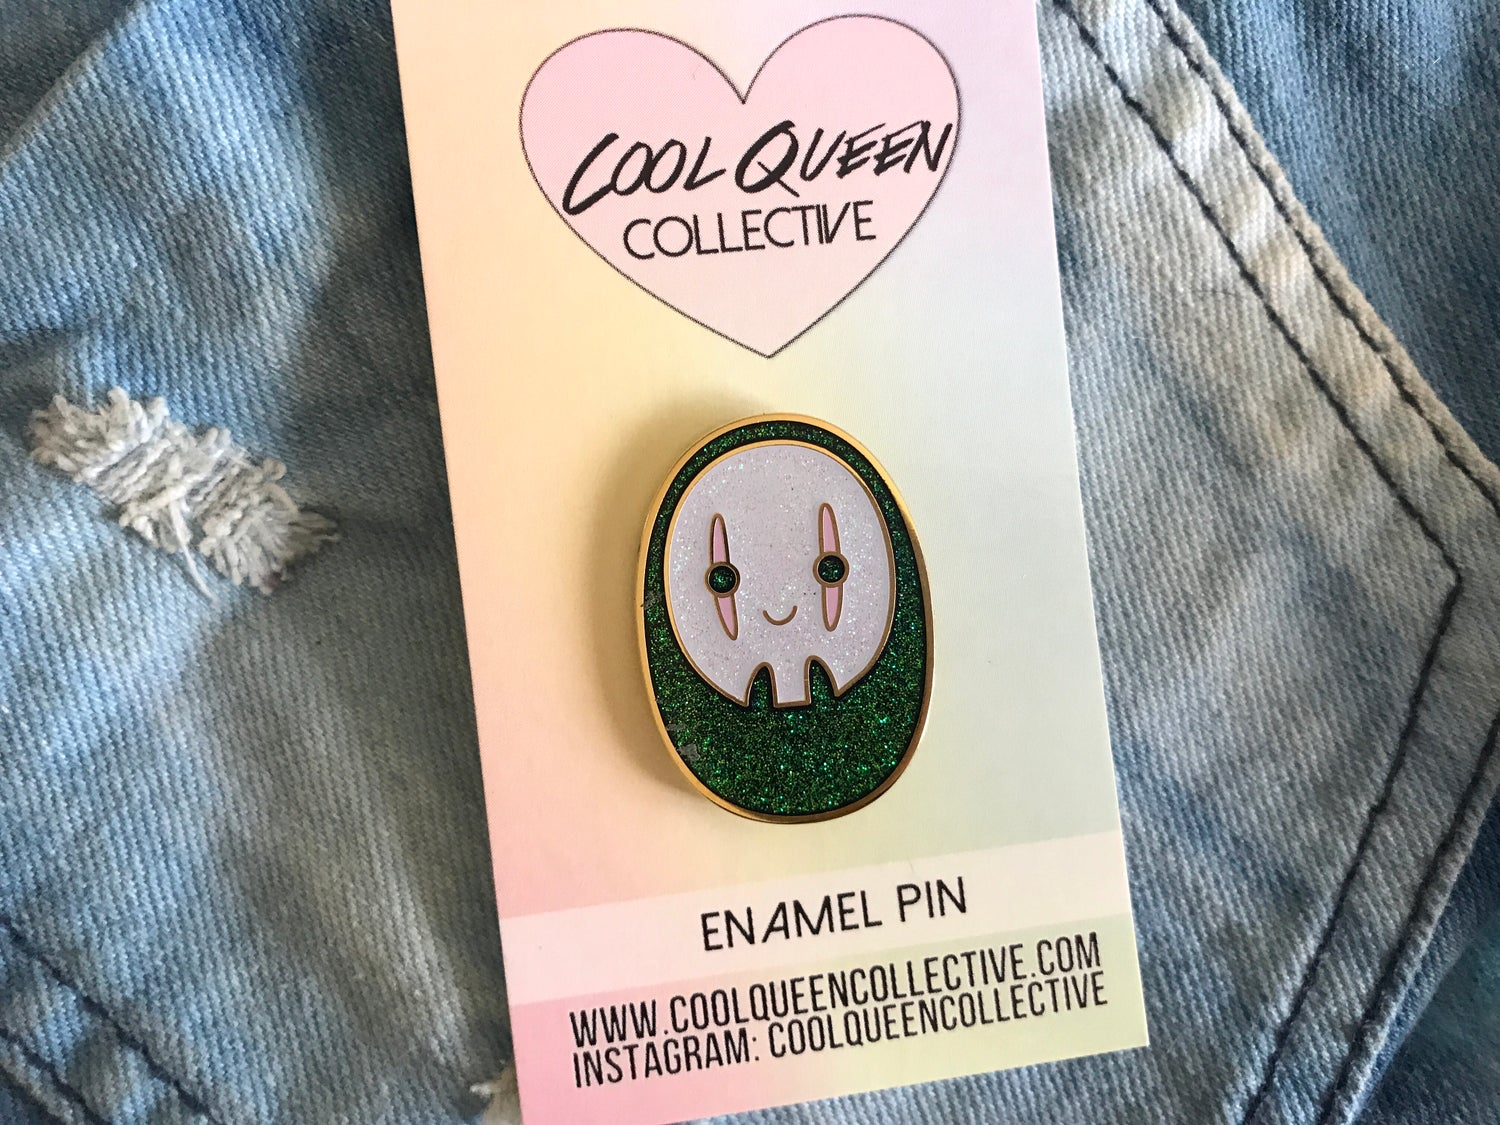 Image of No Face Enamel Pin